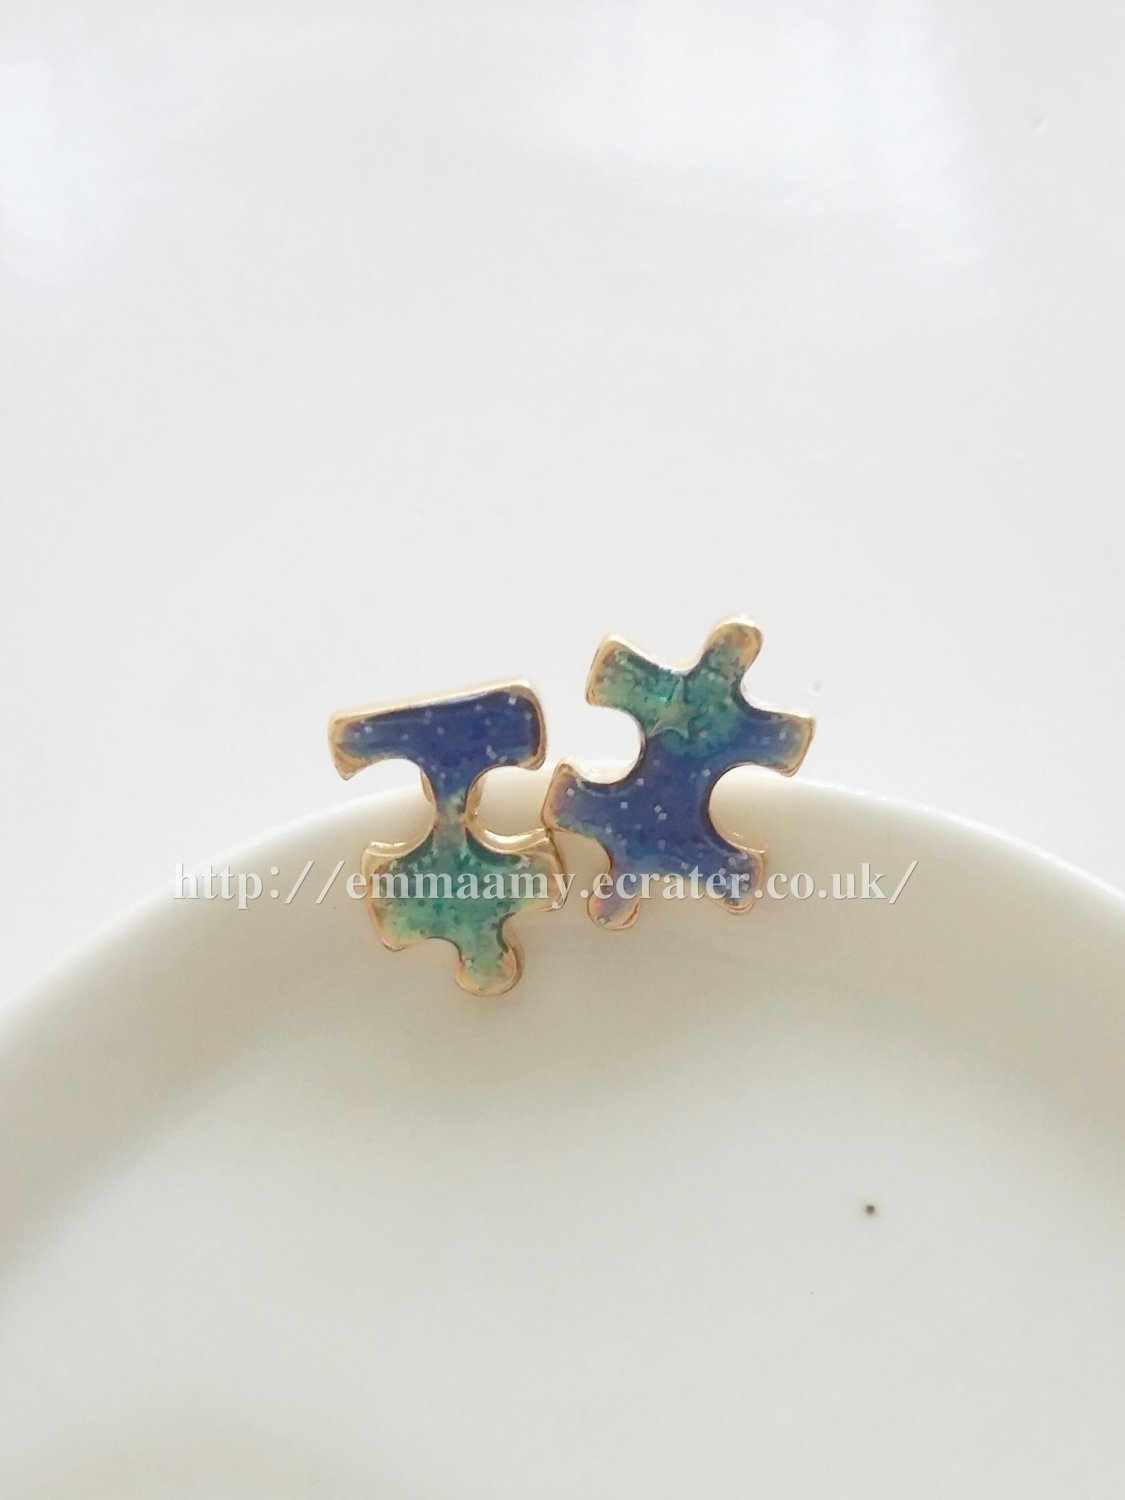 Exquisite Japanese Style Puzzle Star Stud Earrings